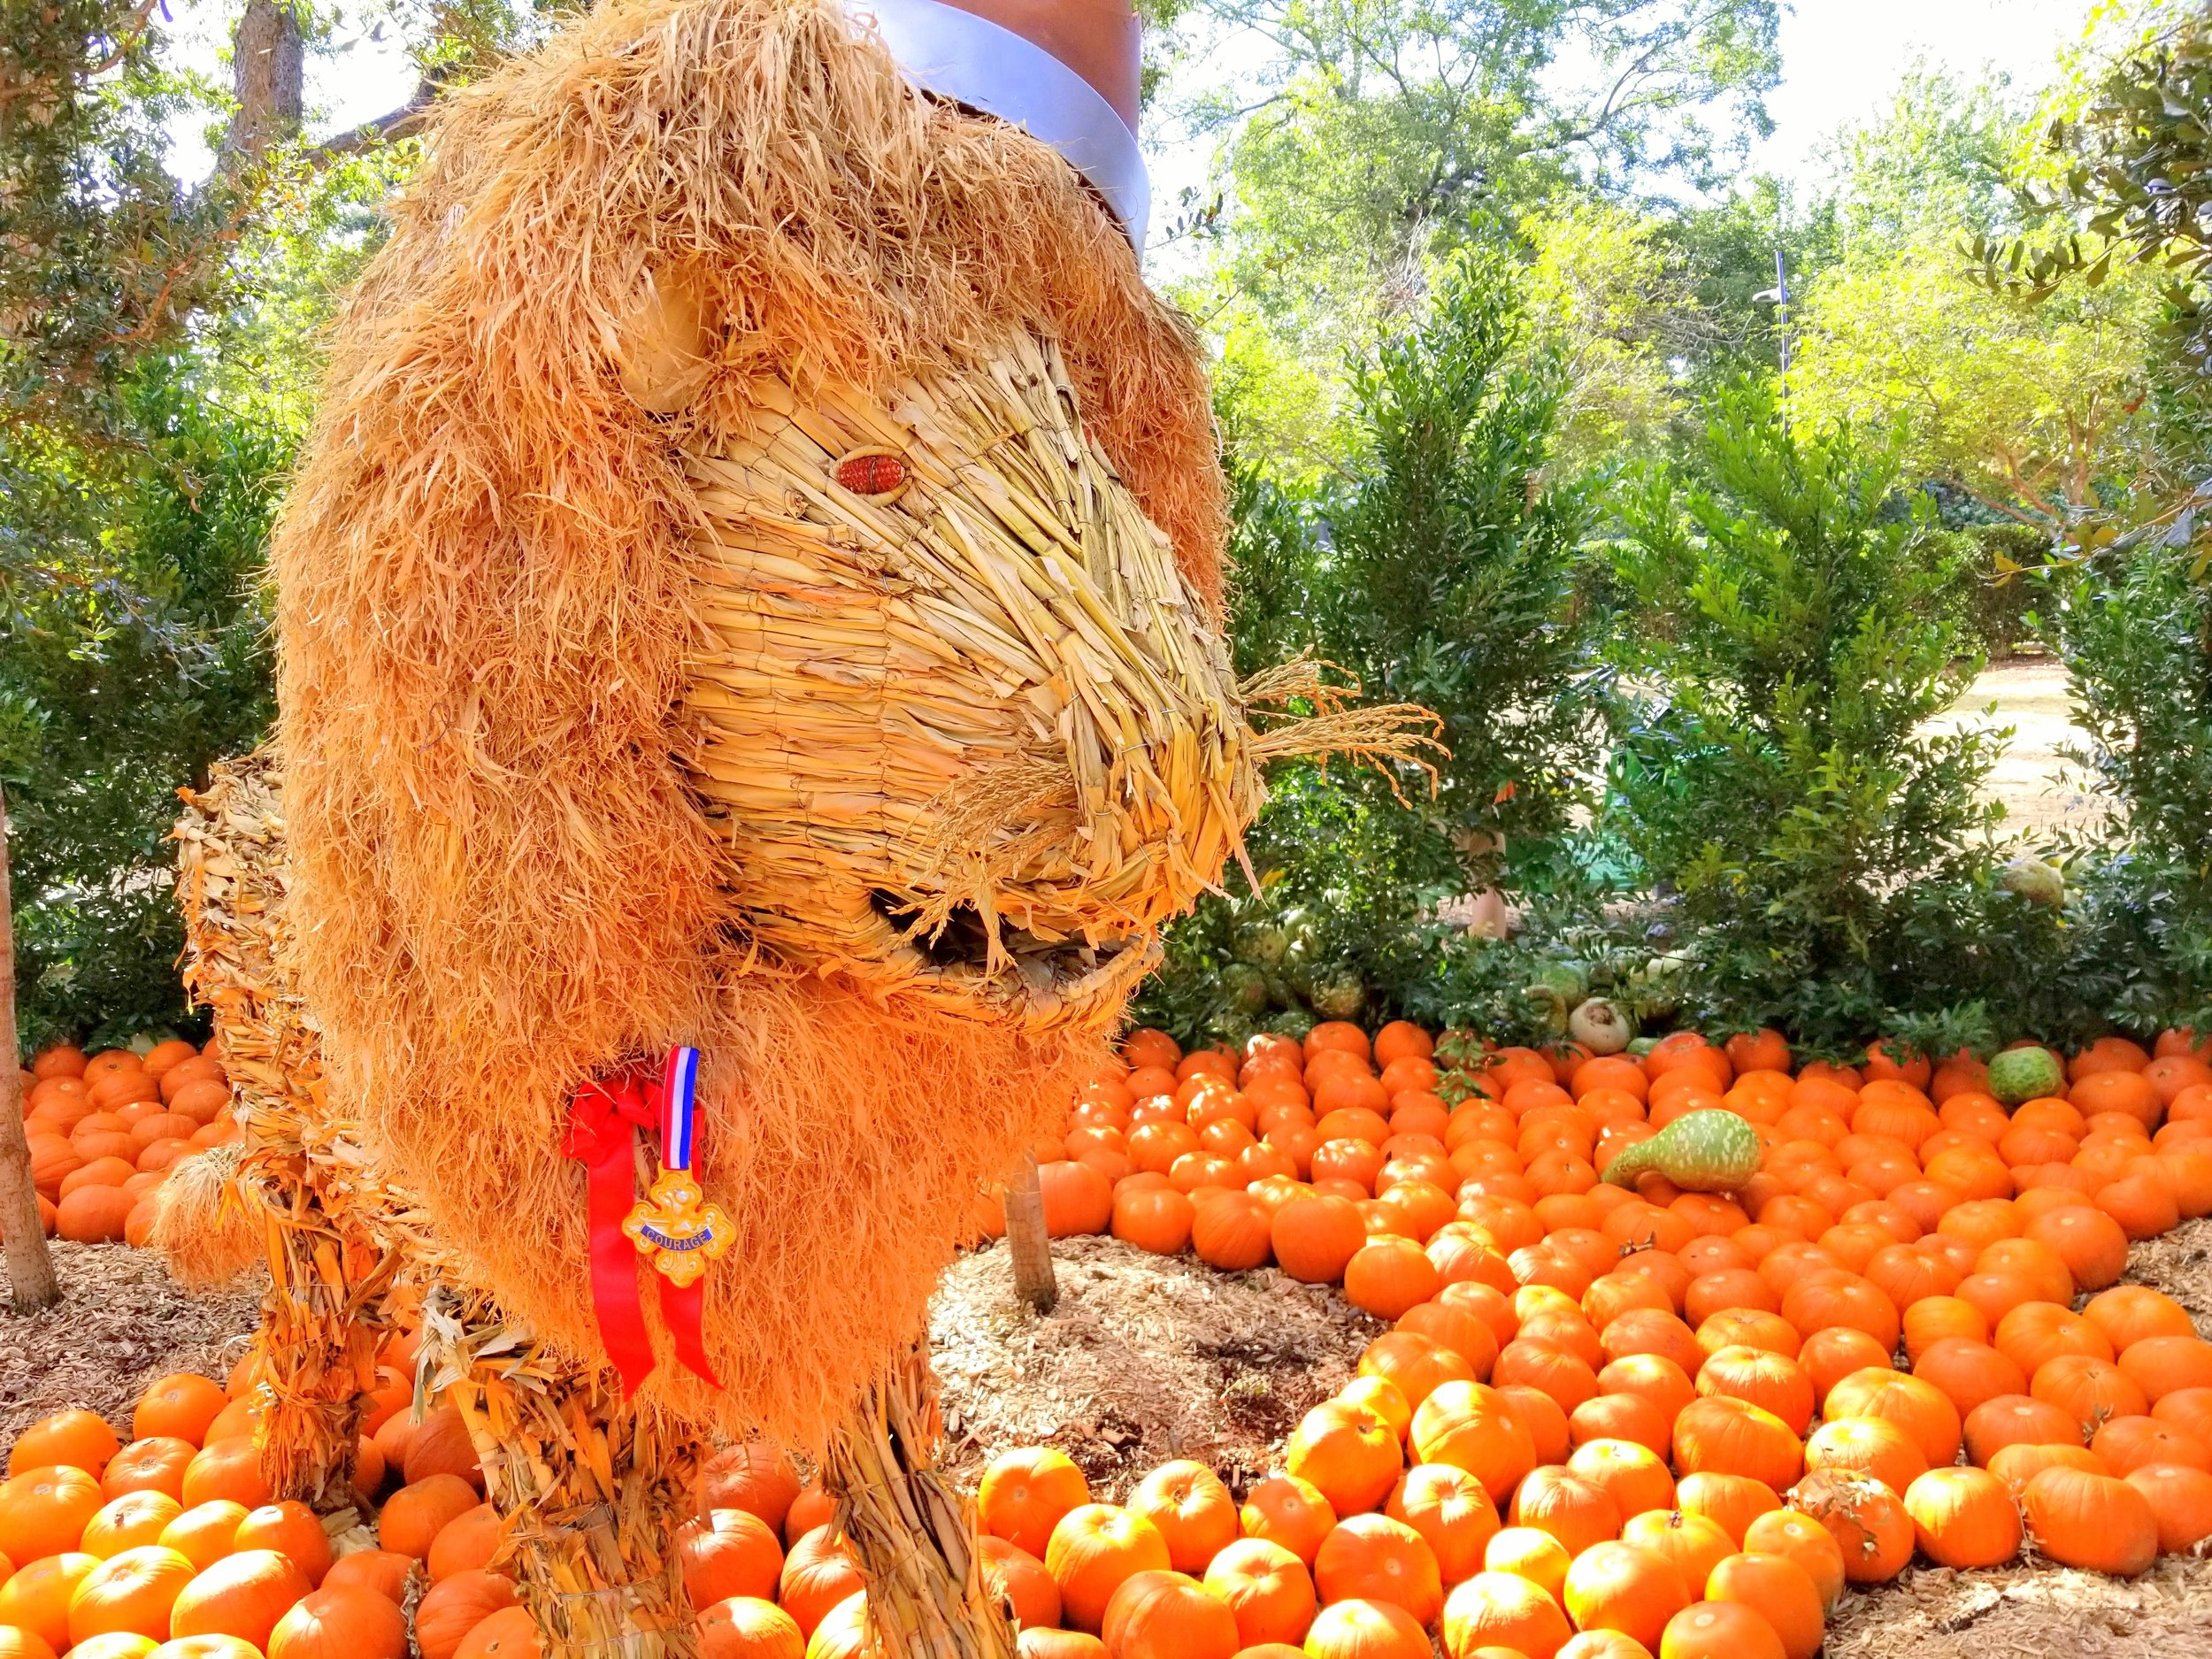 Dallas Arboretum celebrates Autumn with its annual themed pumpkin patch